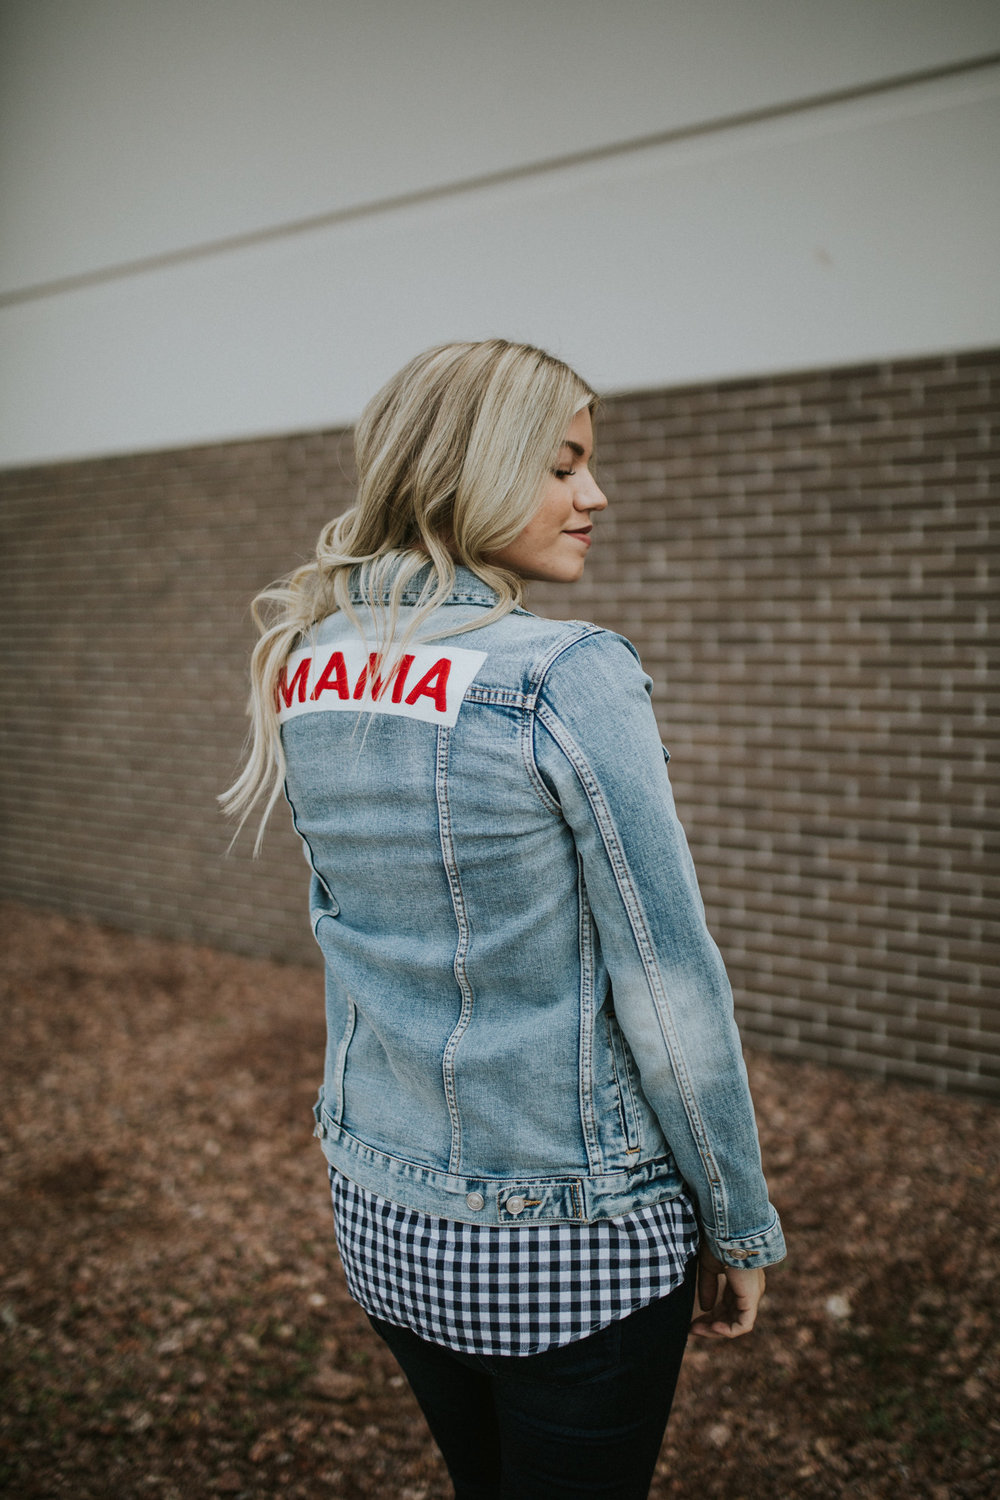 Mama Denim Jacket / Ingrid & Isabel Maternity • @livingincolorblog